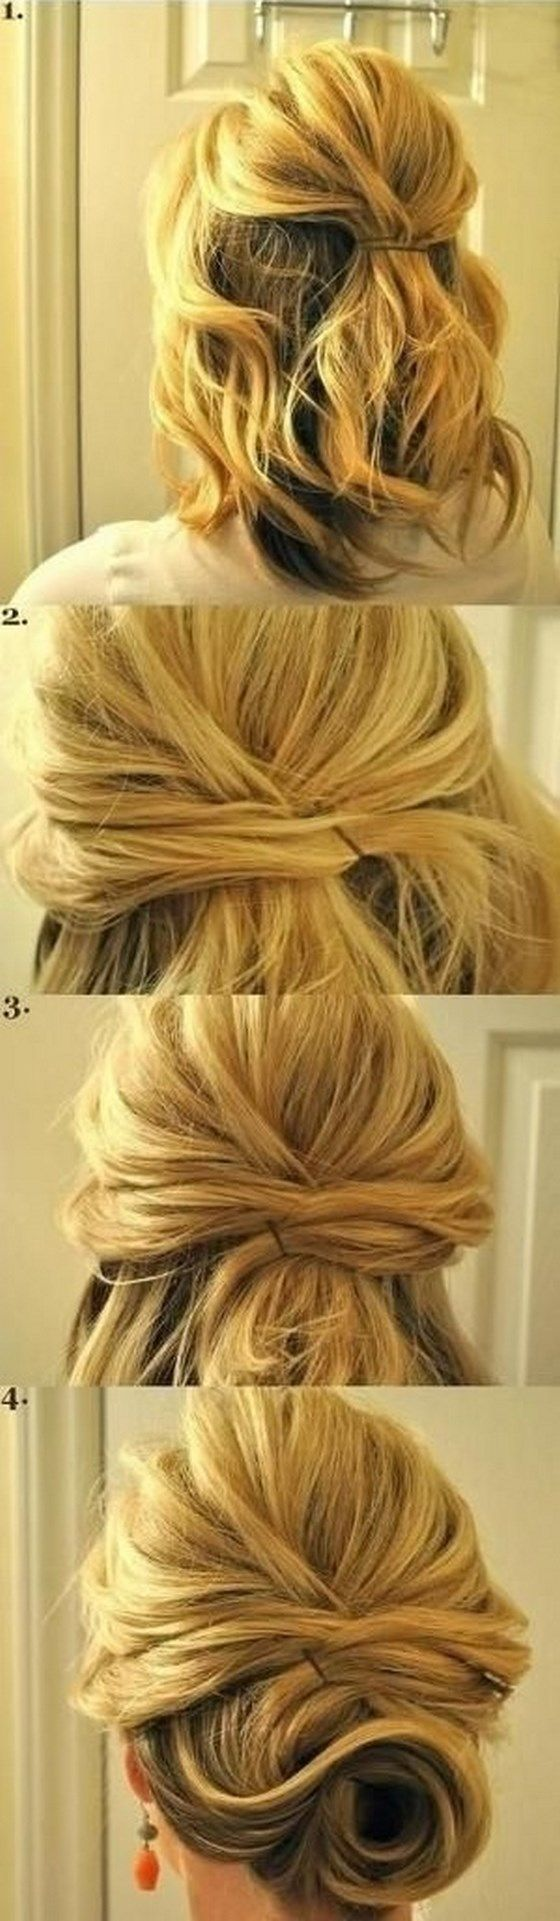 Easy party Hairstyles step by step - Peinados para Fiestas fáciles paso a paso